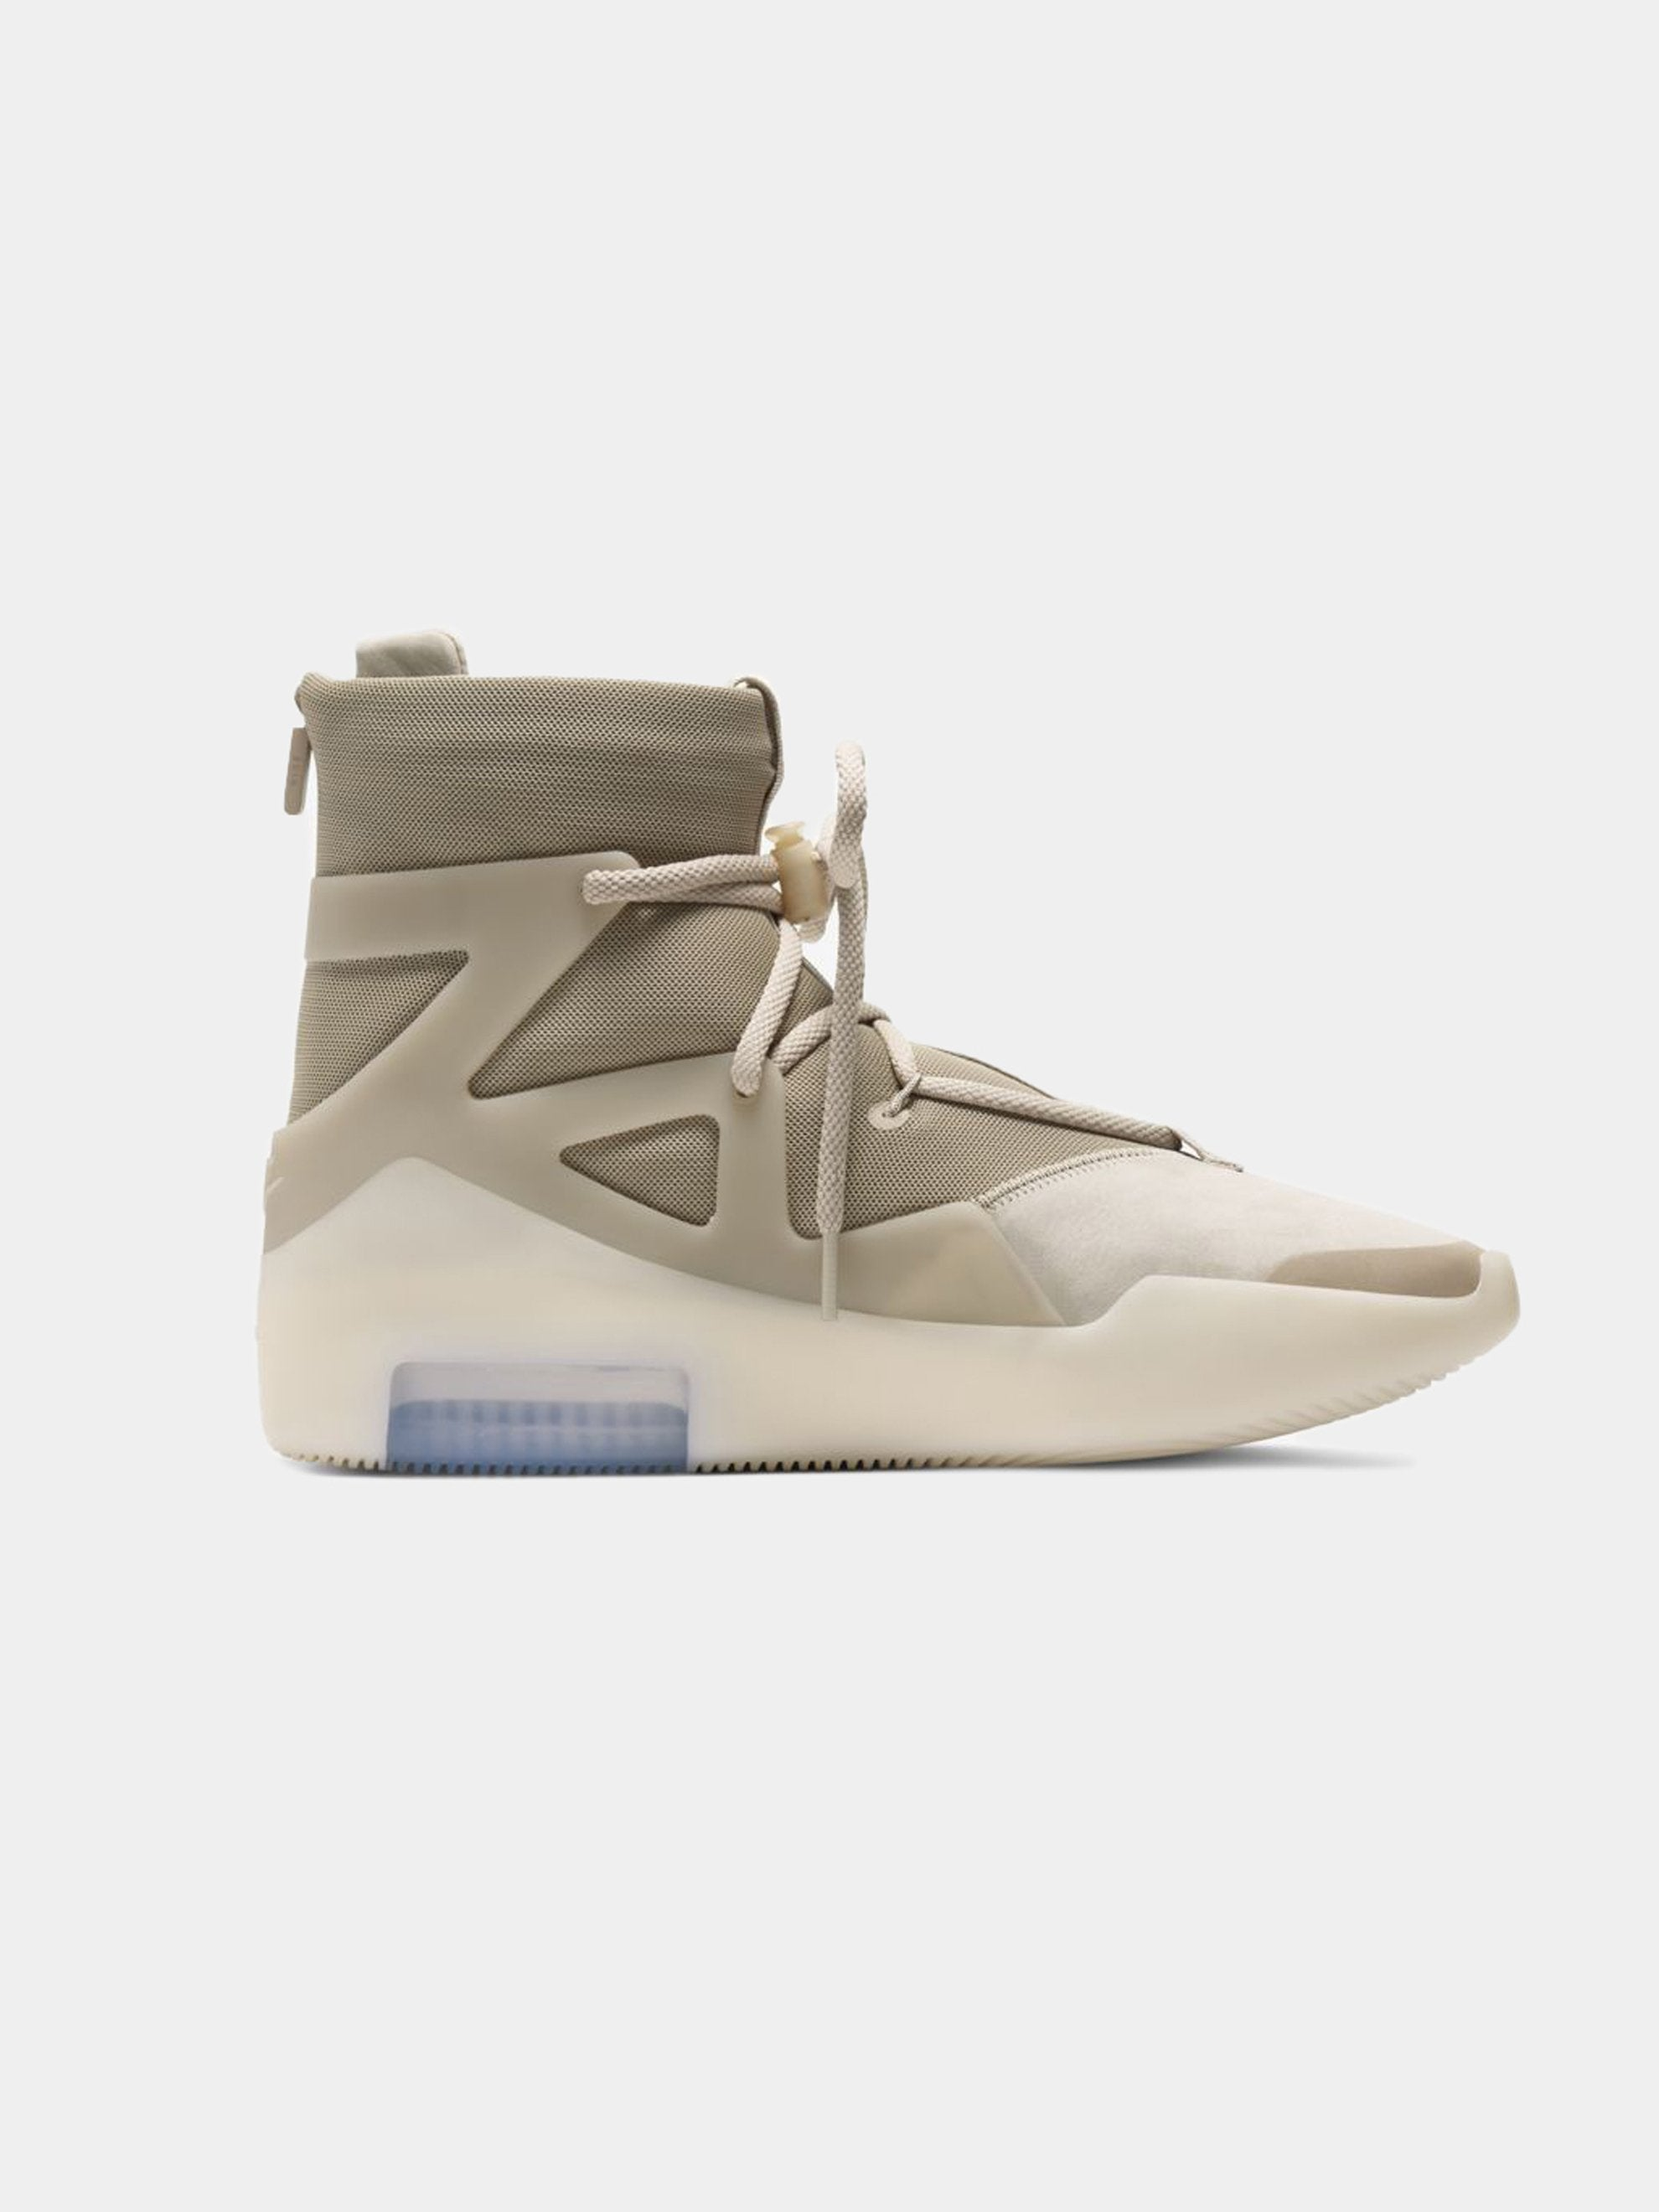 Multi-Color/String Oatmeal Nike Air Fear of God 1 4